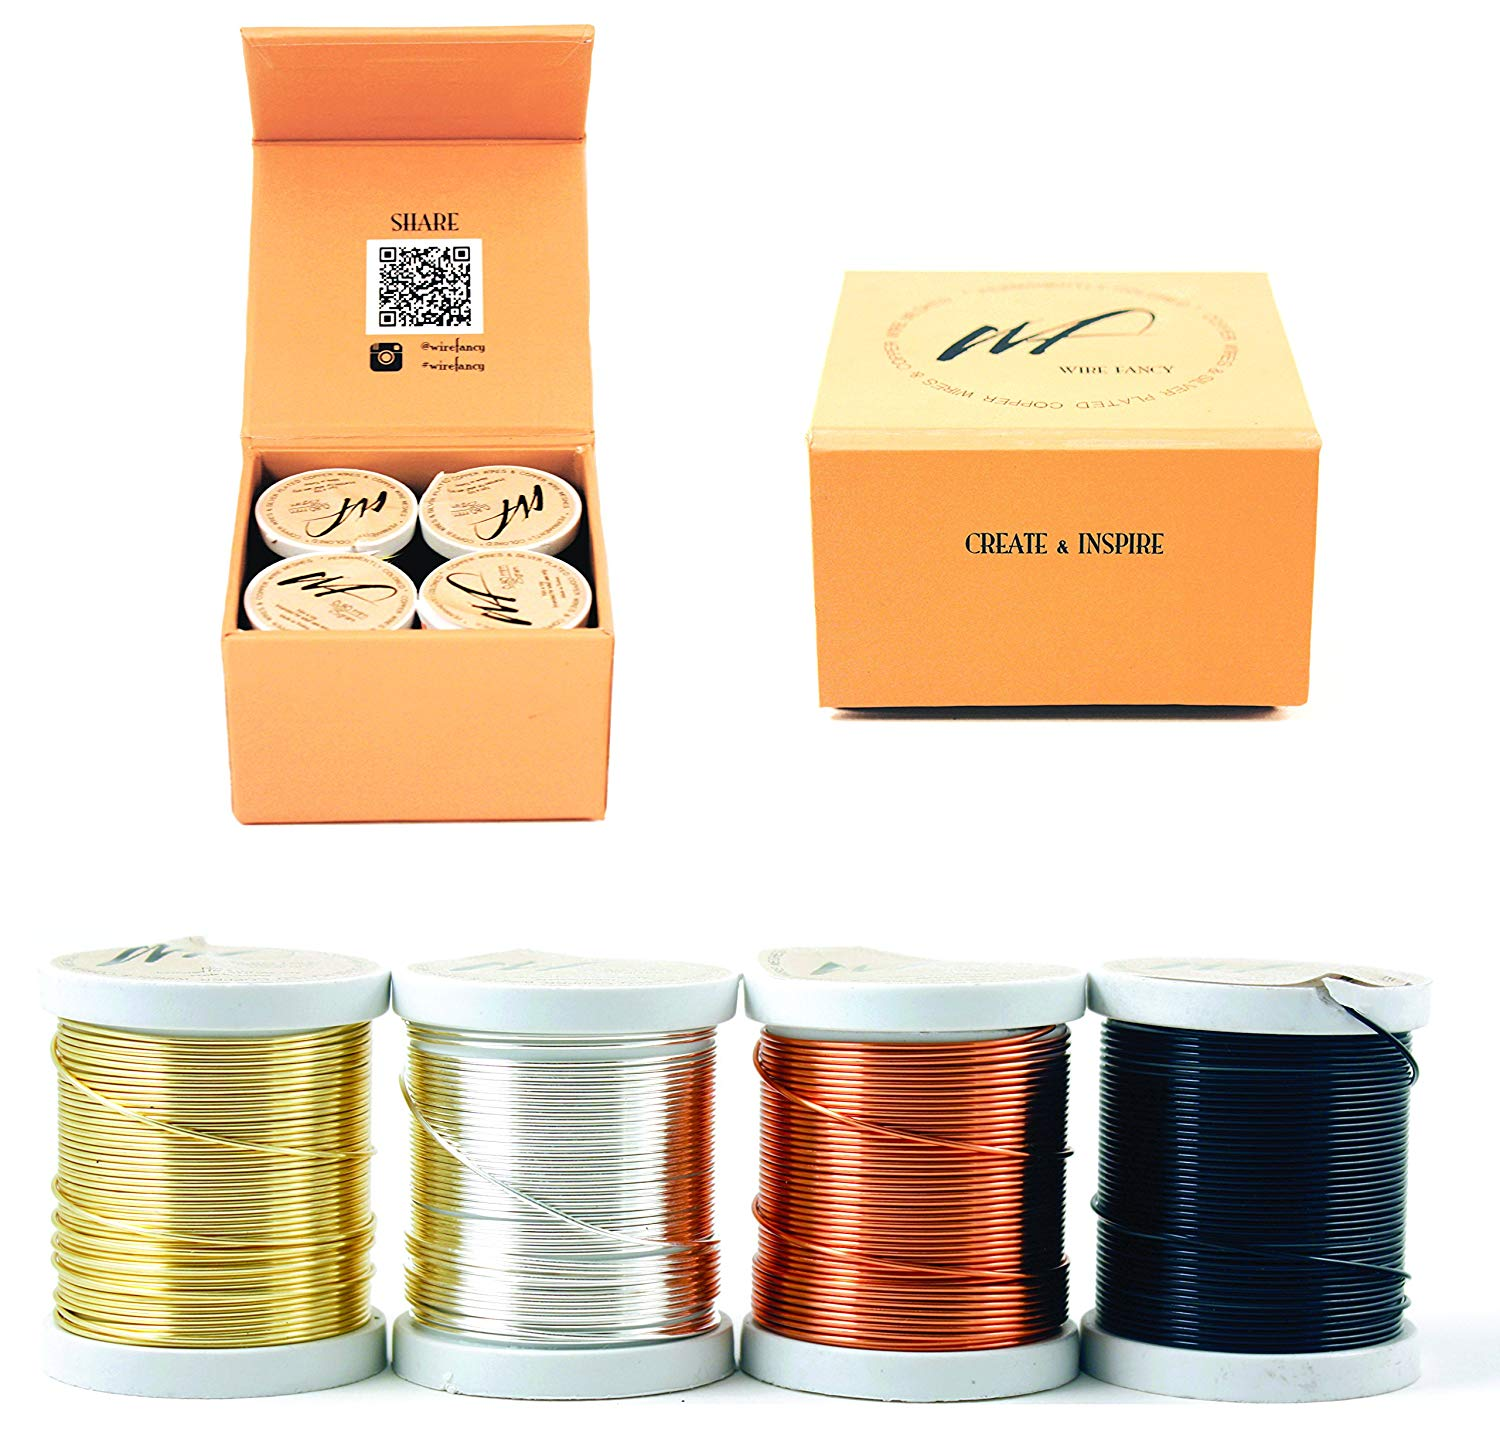 Silver-Plated Copper and Copper Craft Wire Set of 4 Spools (WF Color Set 1, 0.80 mm)